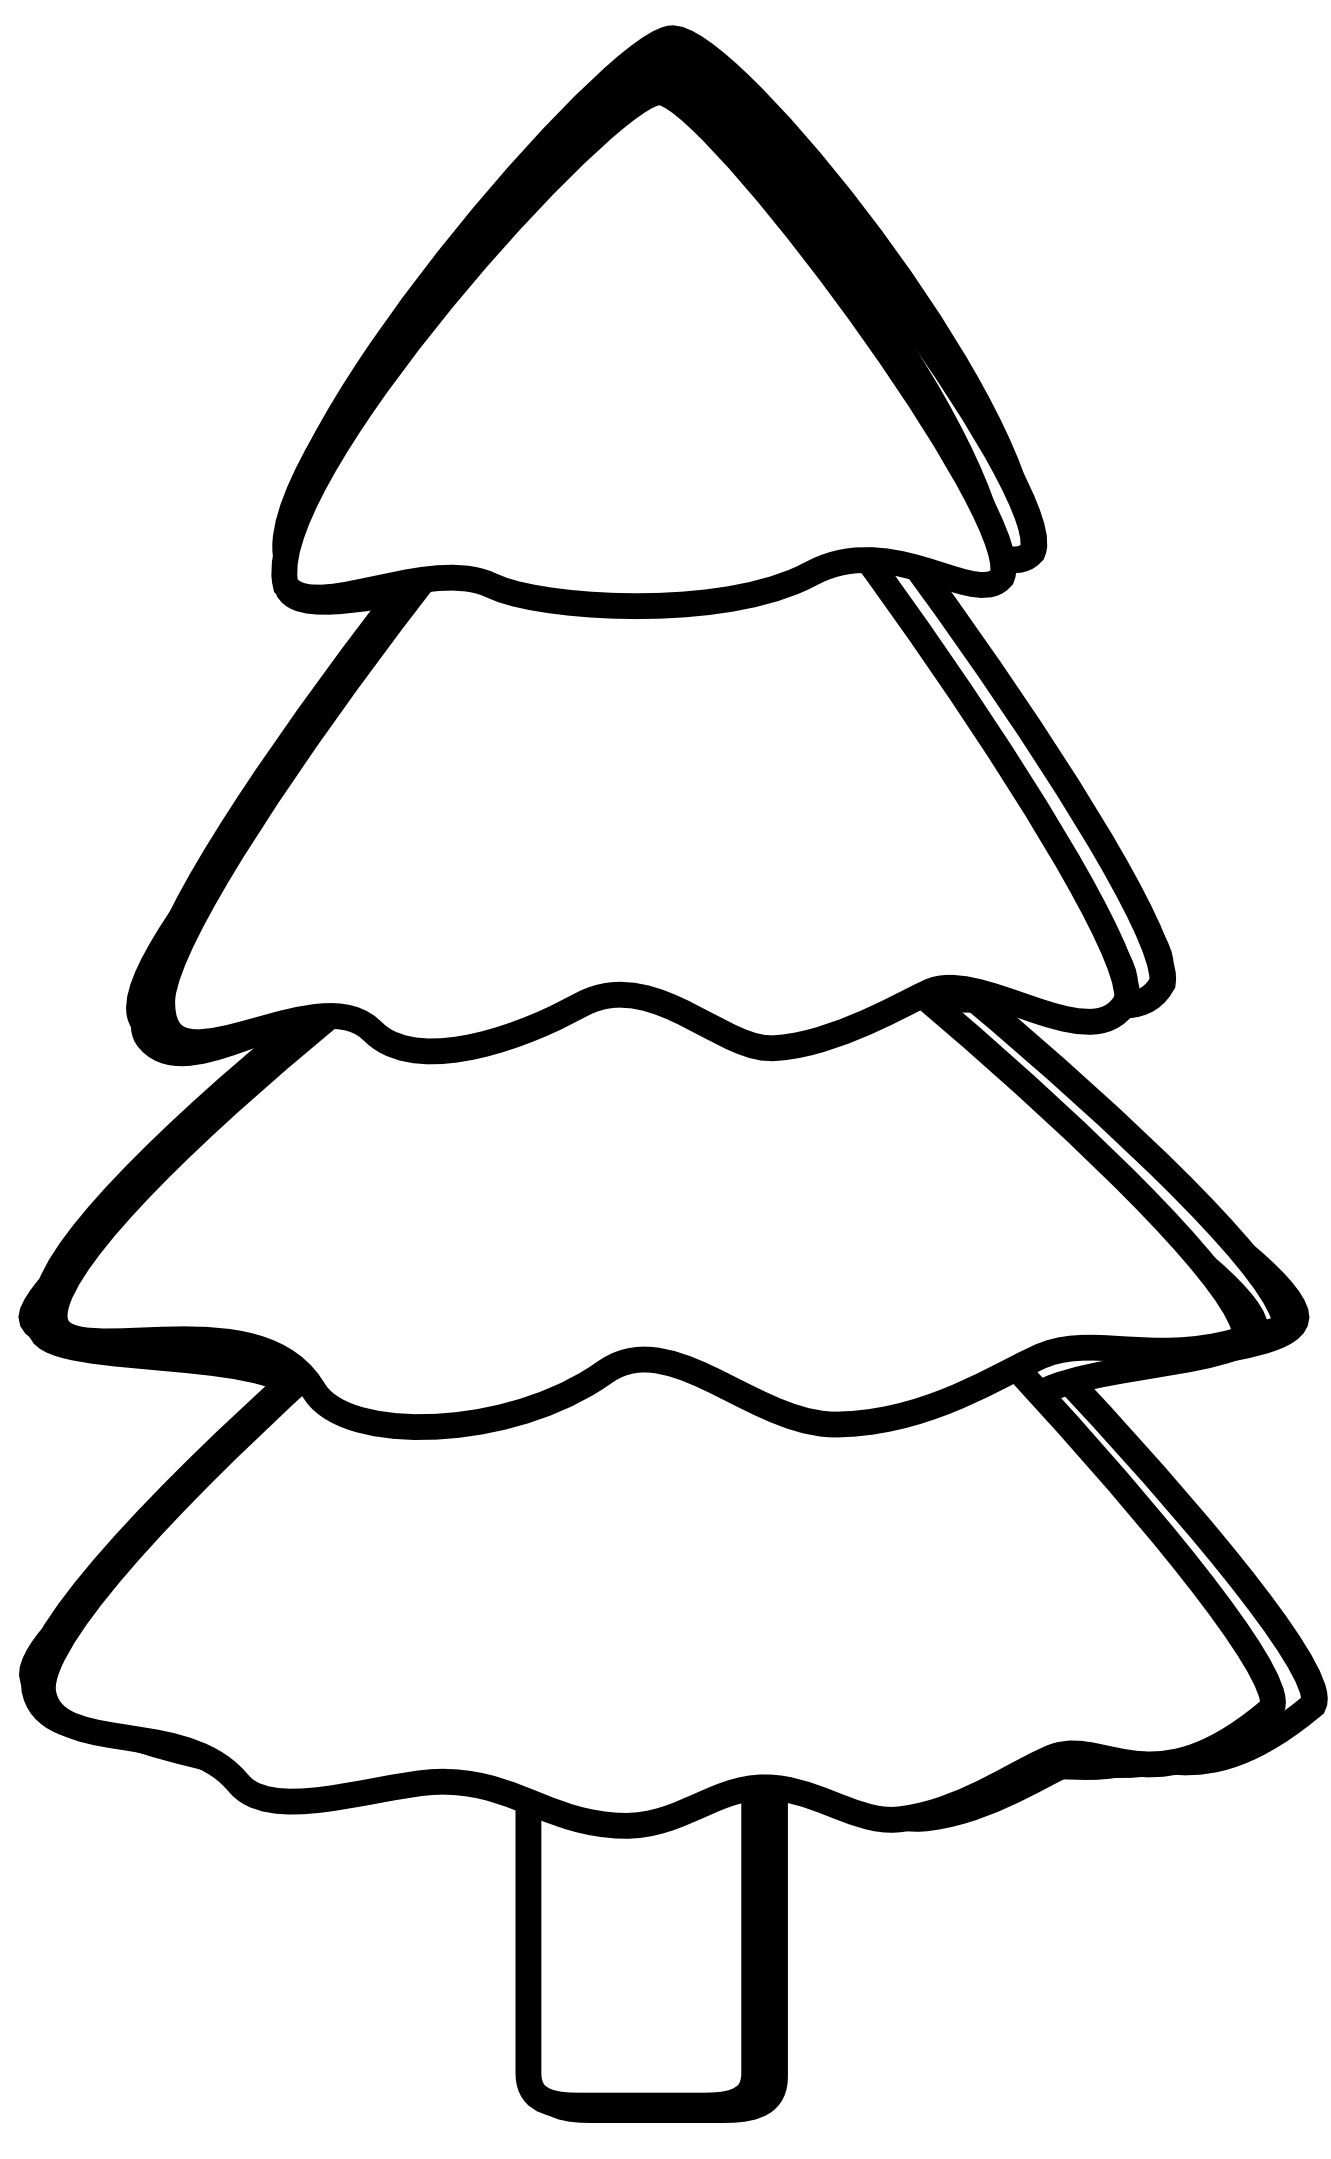 Christmas tree branch clipart black and white banner black and white stock Free Black And White Tree Clipart, Download Free Clip Art, Free Clip ... banner black and white stock